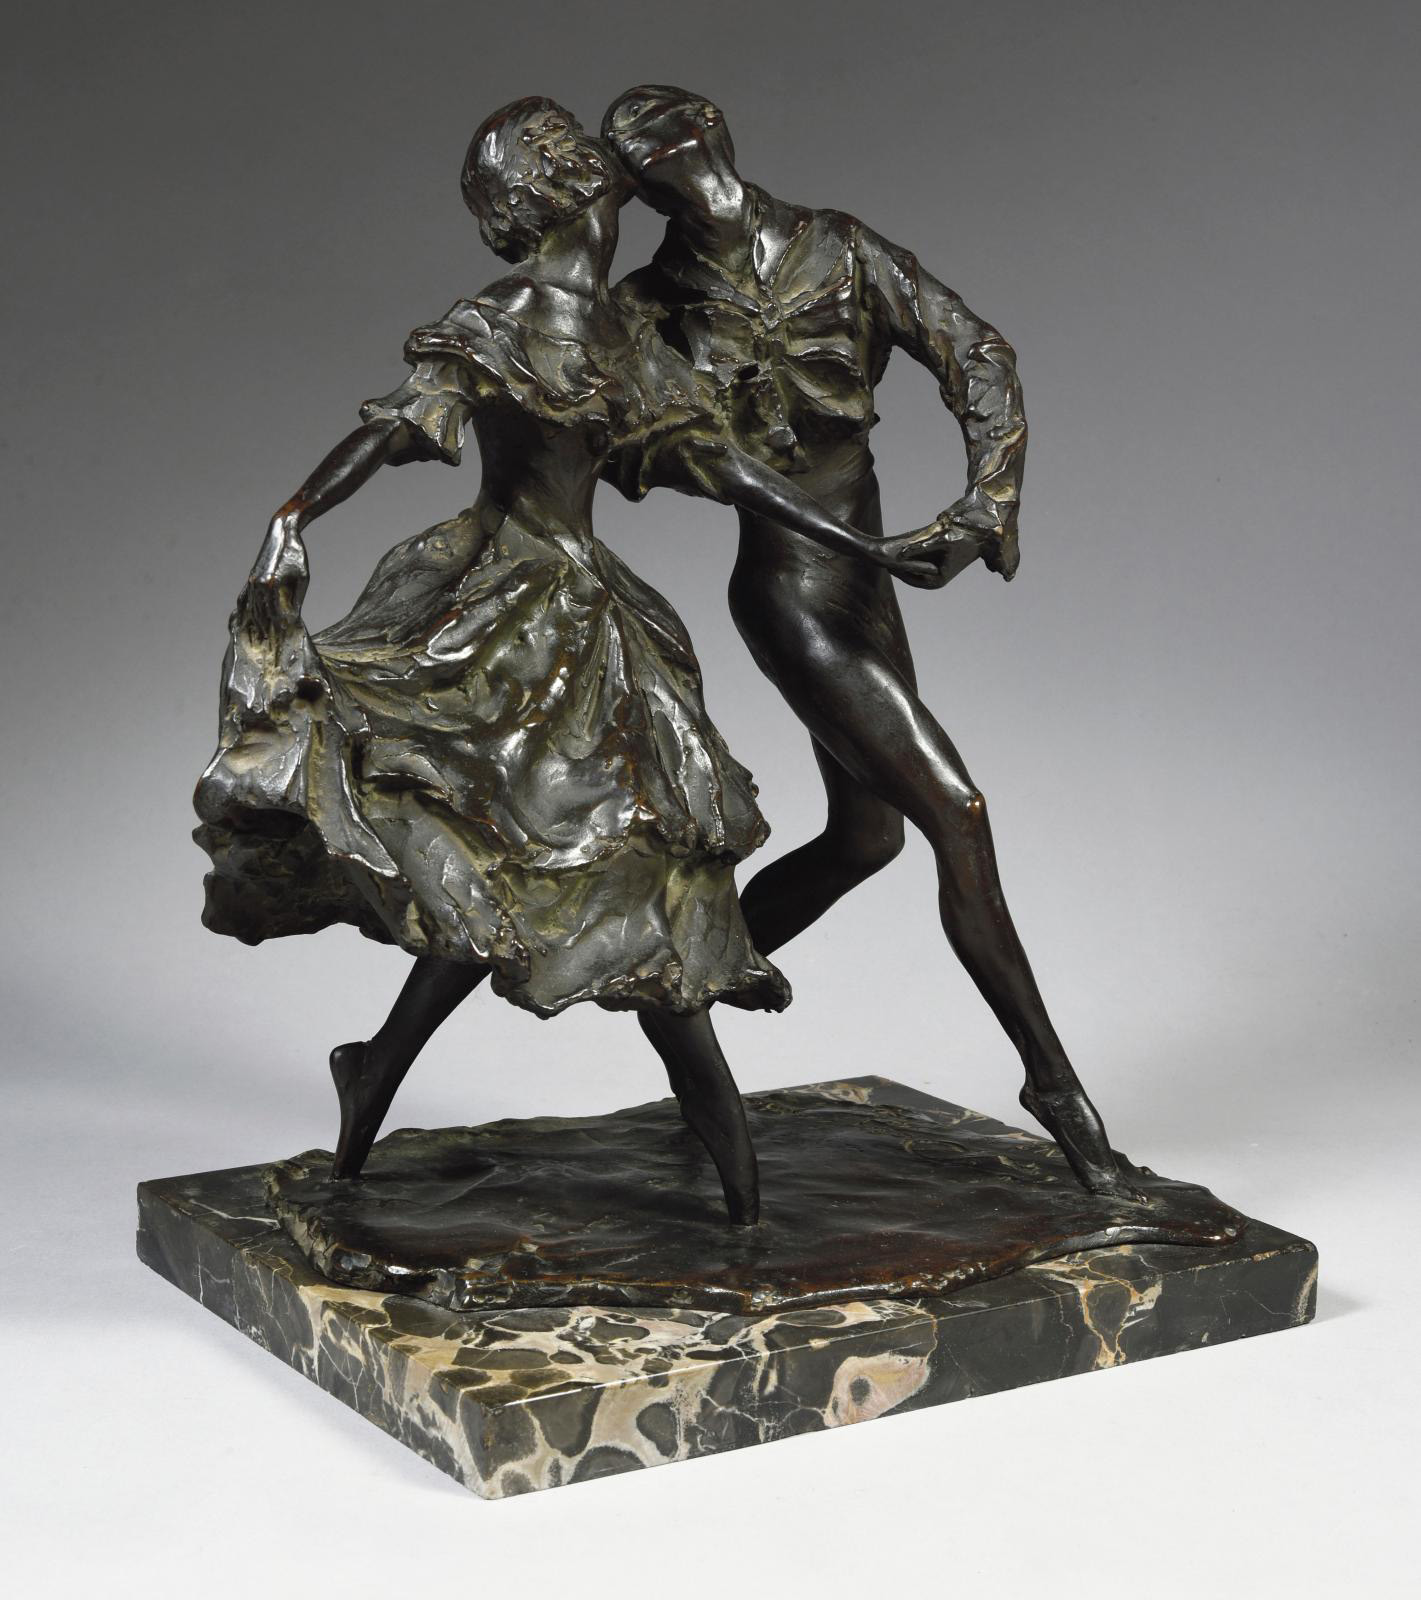 A bronze sculpture of a dancing couple is visible in a period photograph of Prince and Princess Yusupov's Paris home, which has none of th